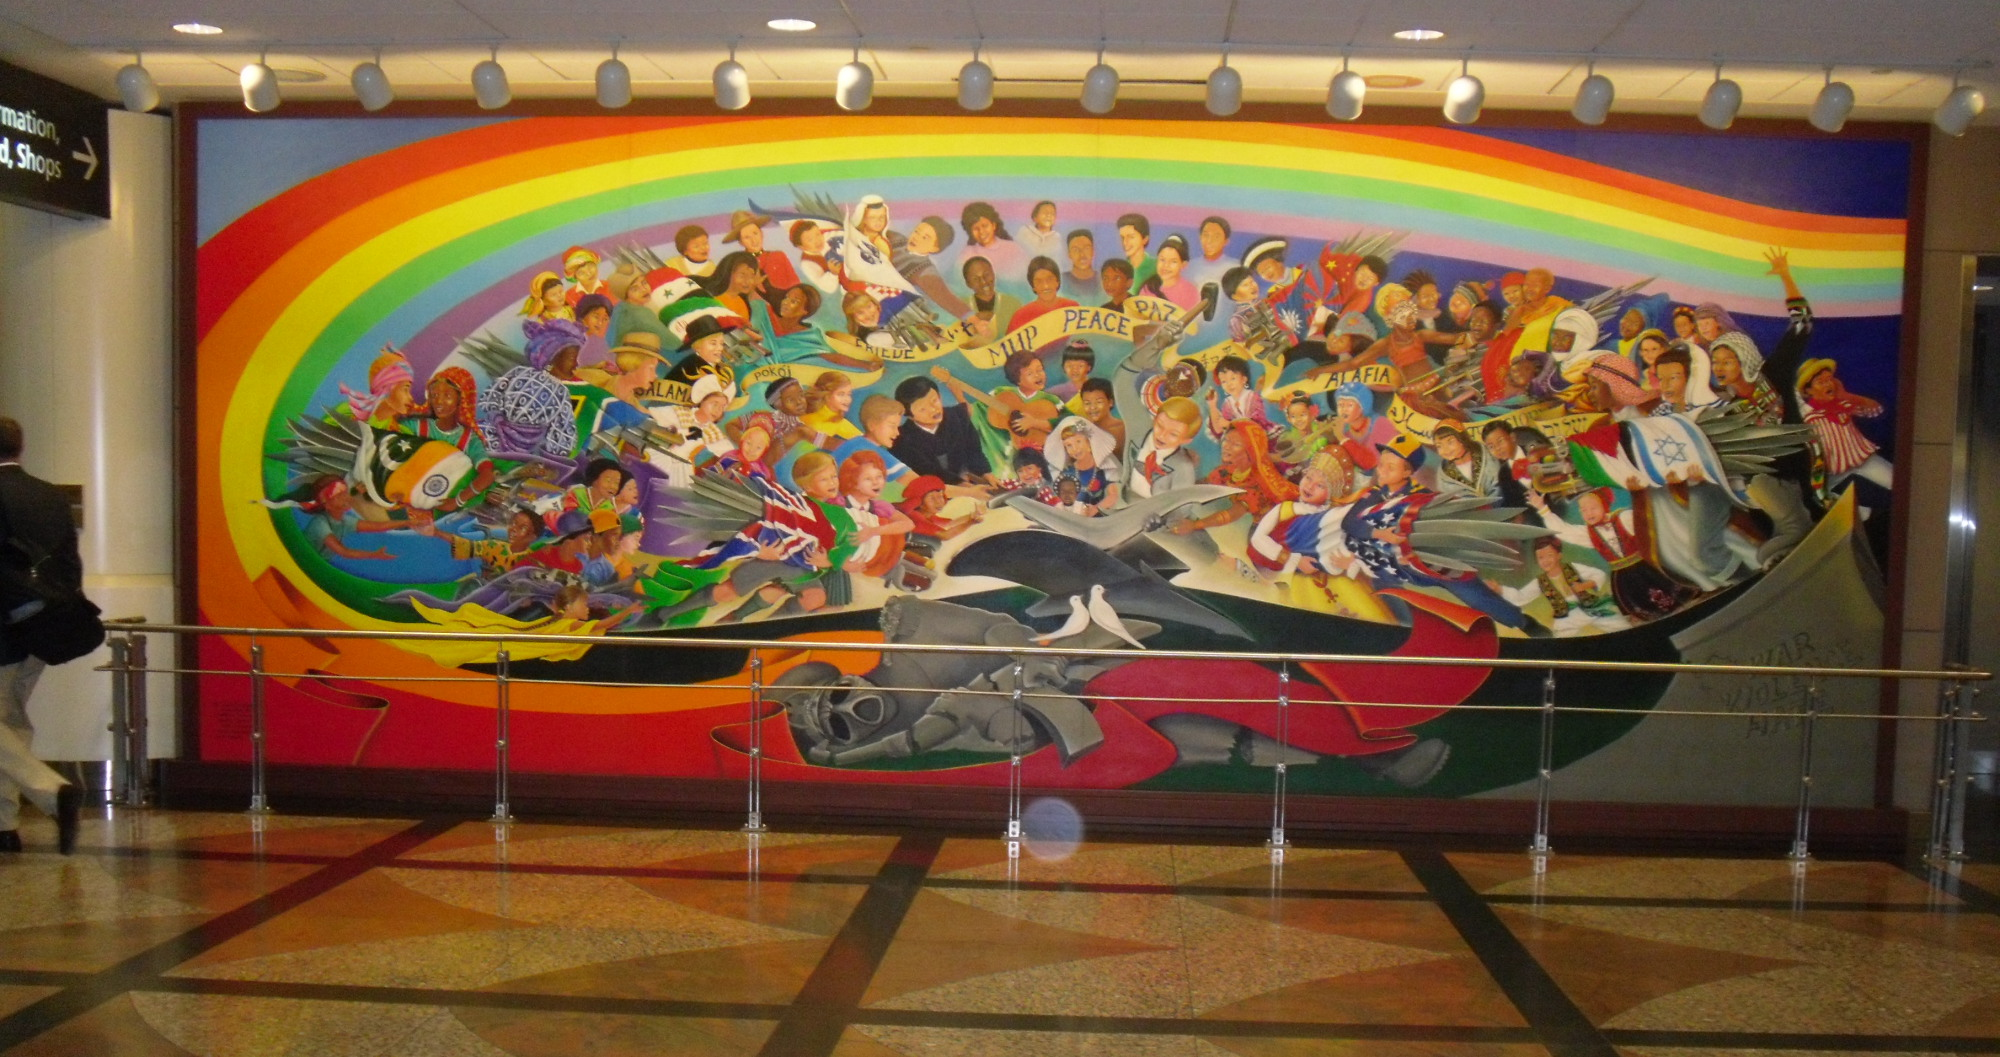 Photo by mark persons for Denver mural airport